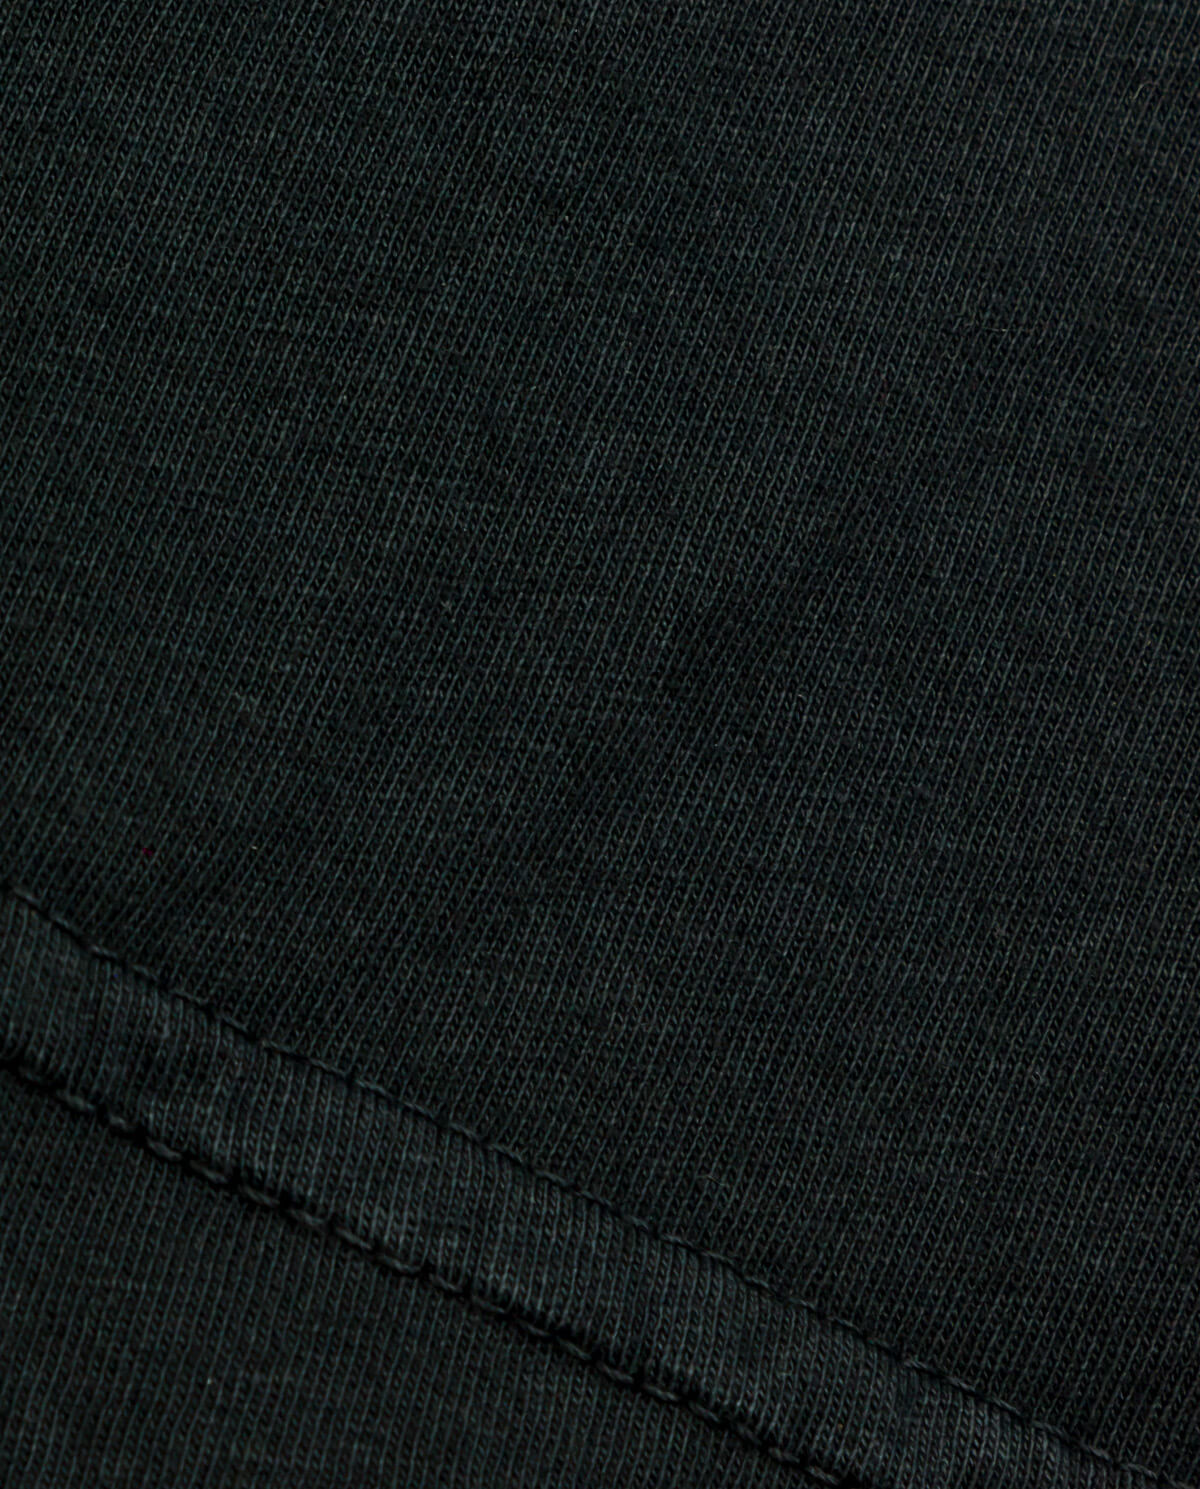 Ahnako Mountains - Vintage Black T-shirt - Fabric Close Up